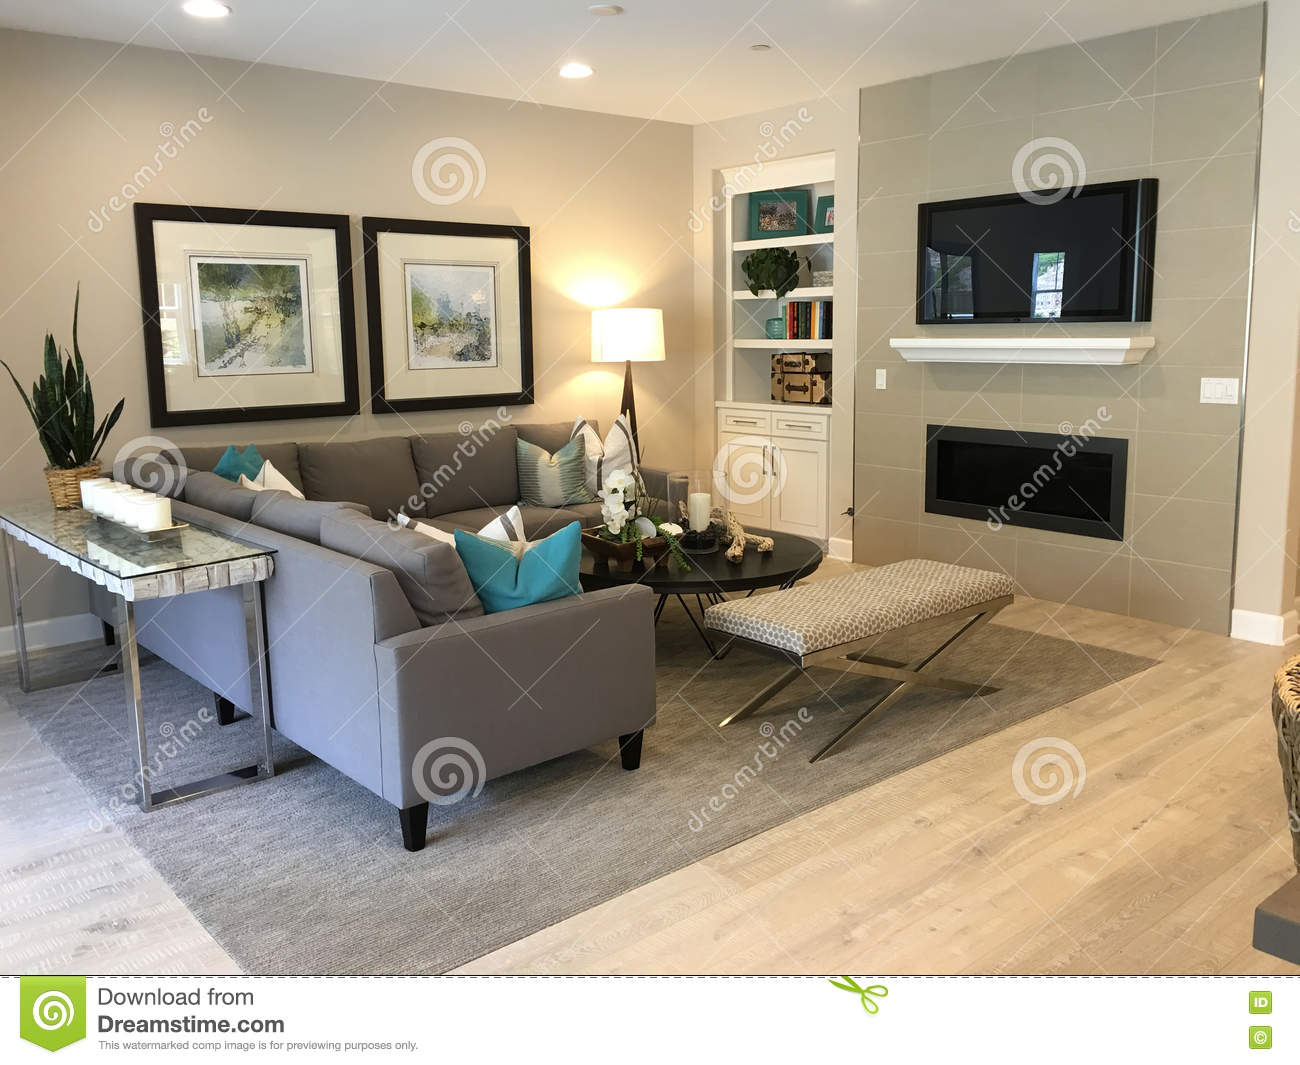 Beautiful Living Room Stock Photo Image 70640026